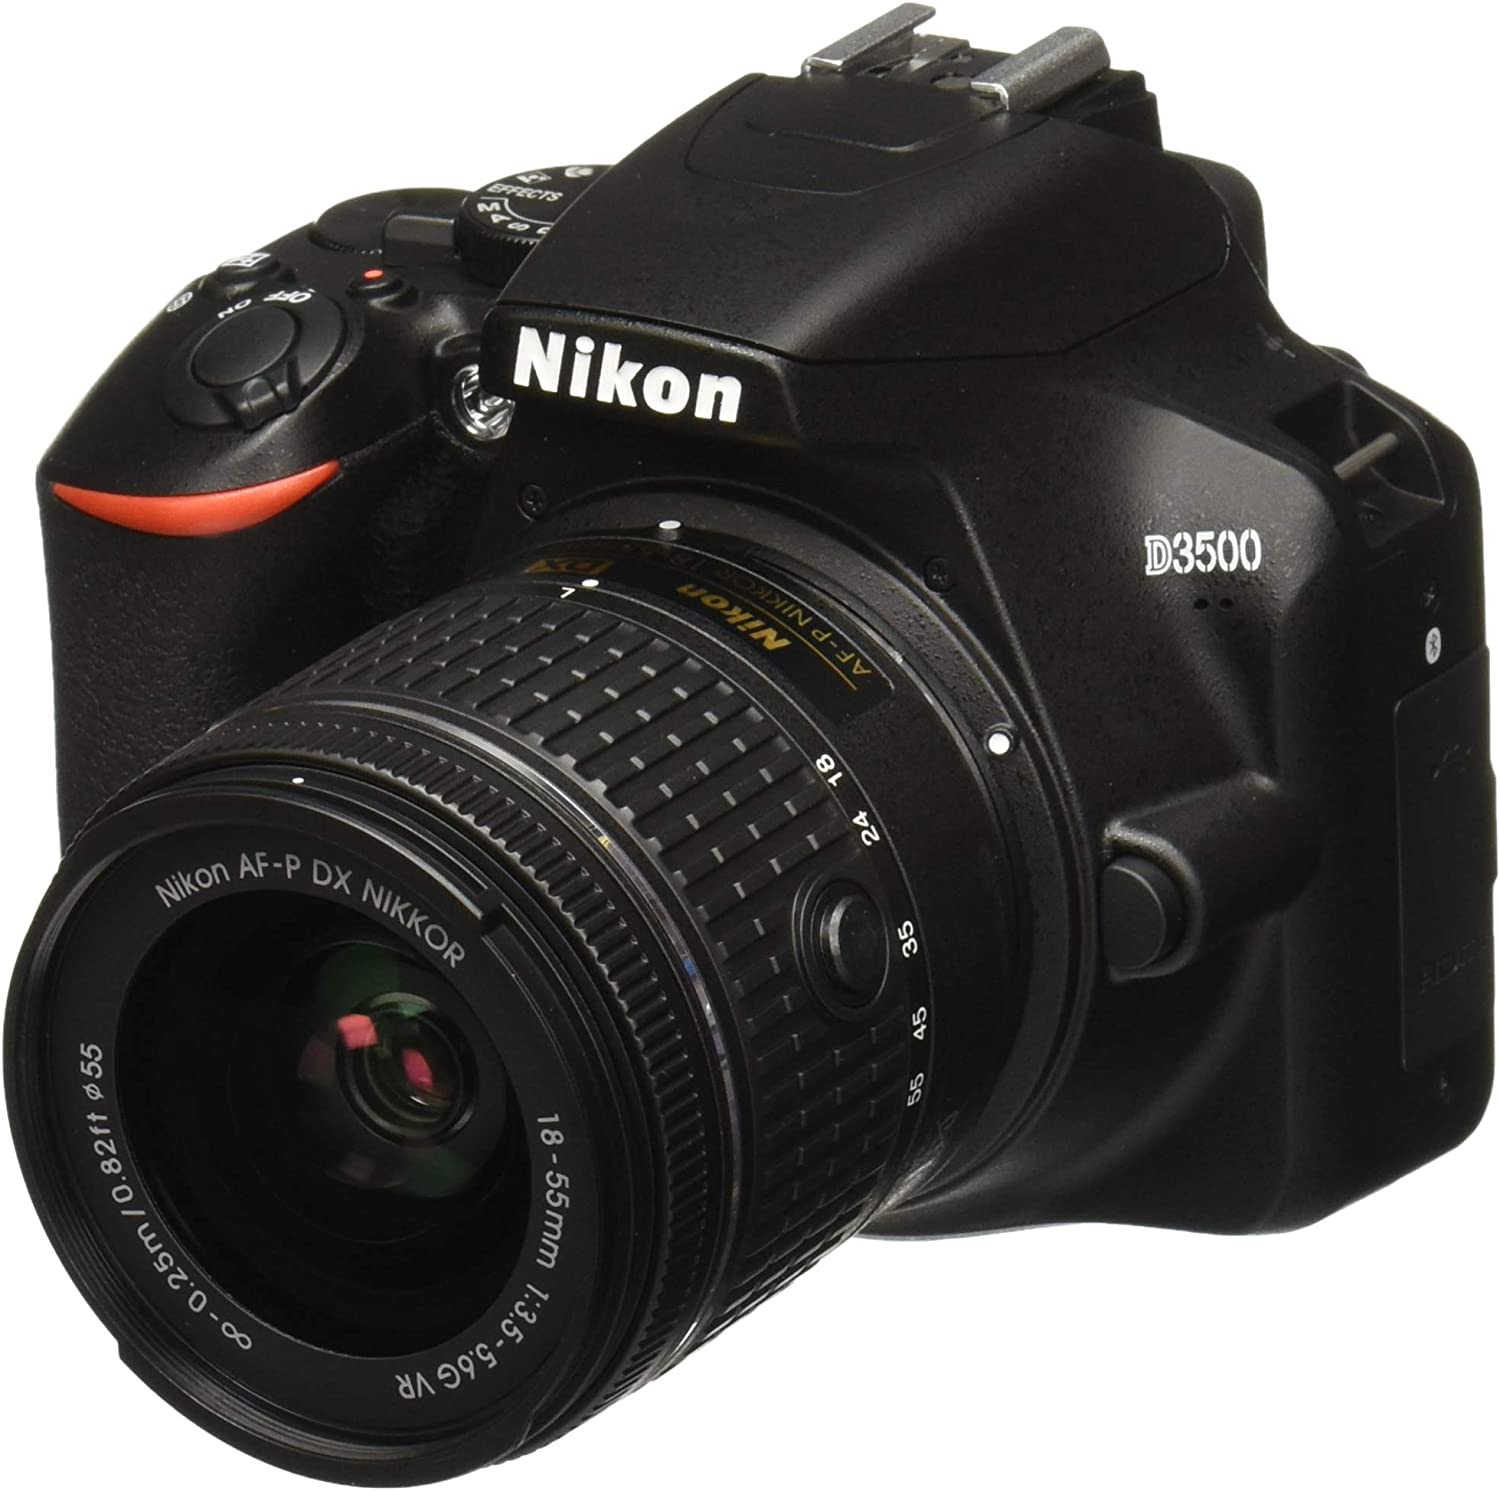 Nikon D5300 has a CMOS sensor which is known to record good details with little to no noise